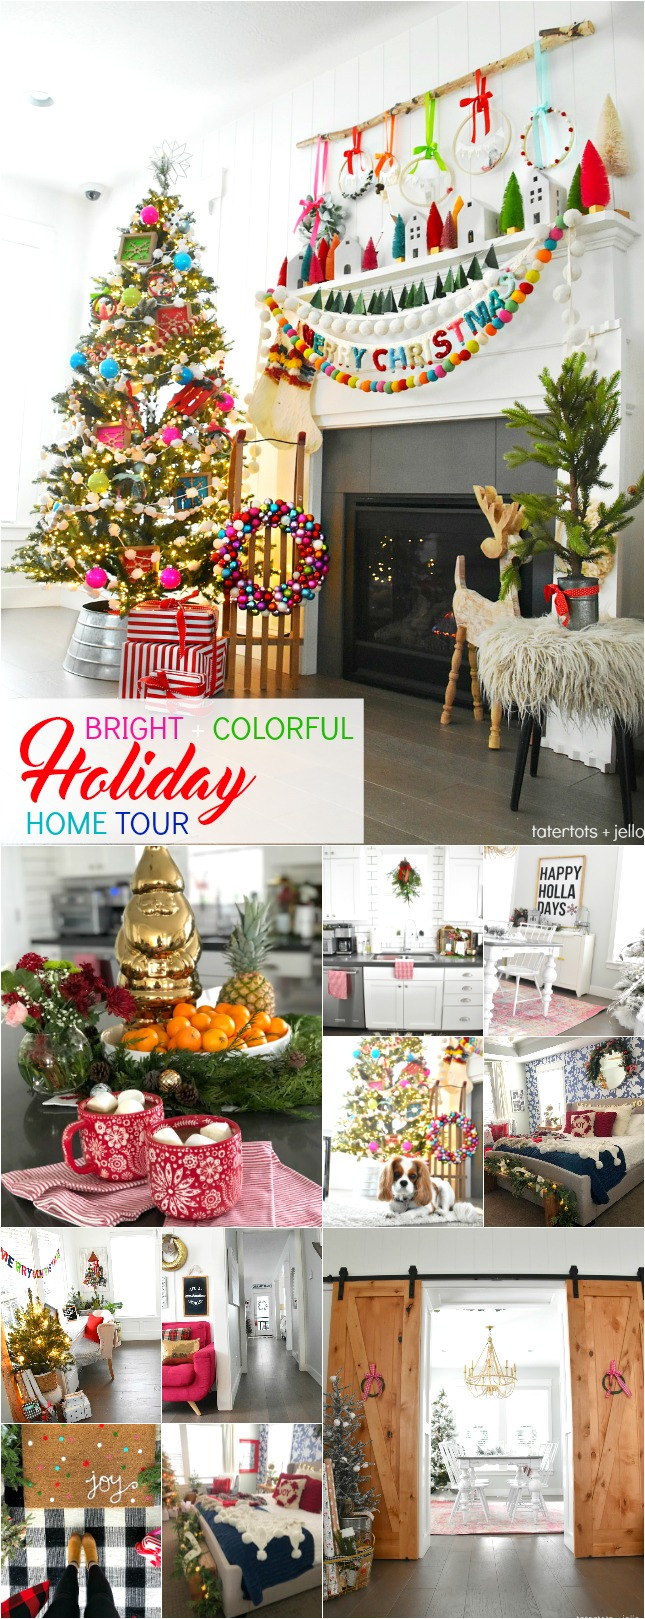 Bright And Colorful Holiday Home Tour Diy Project Ideas